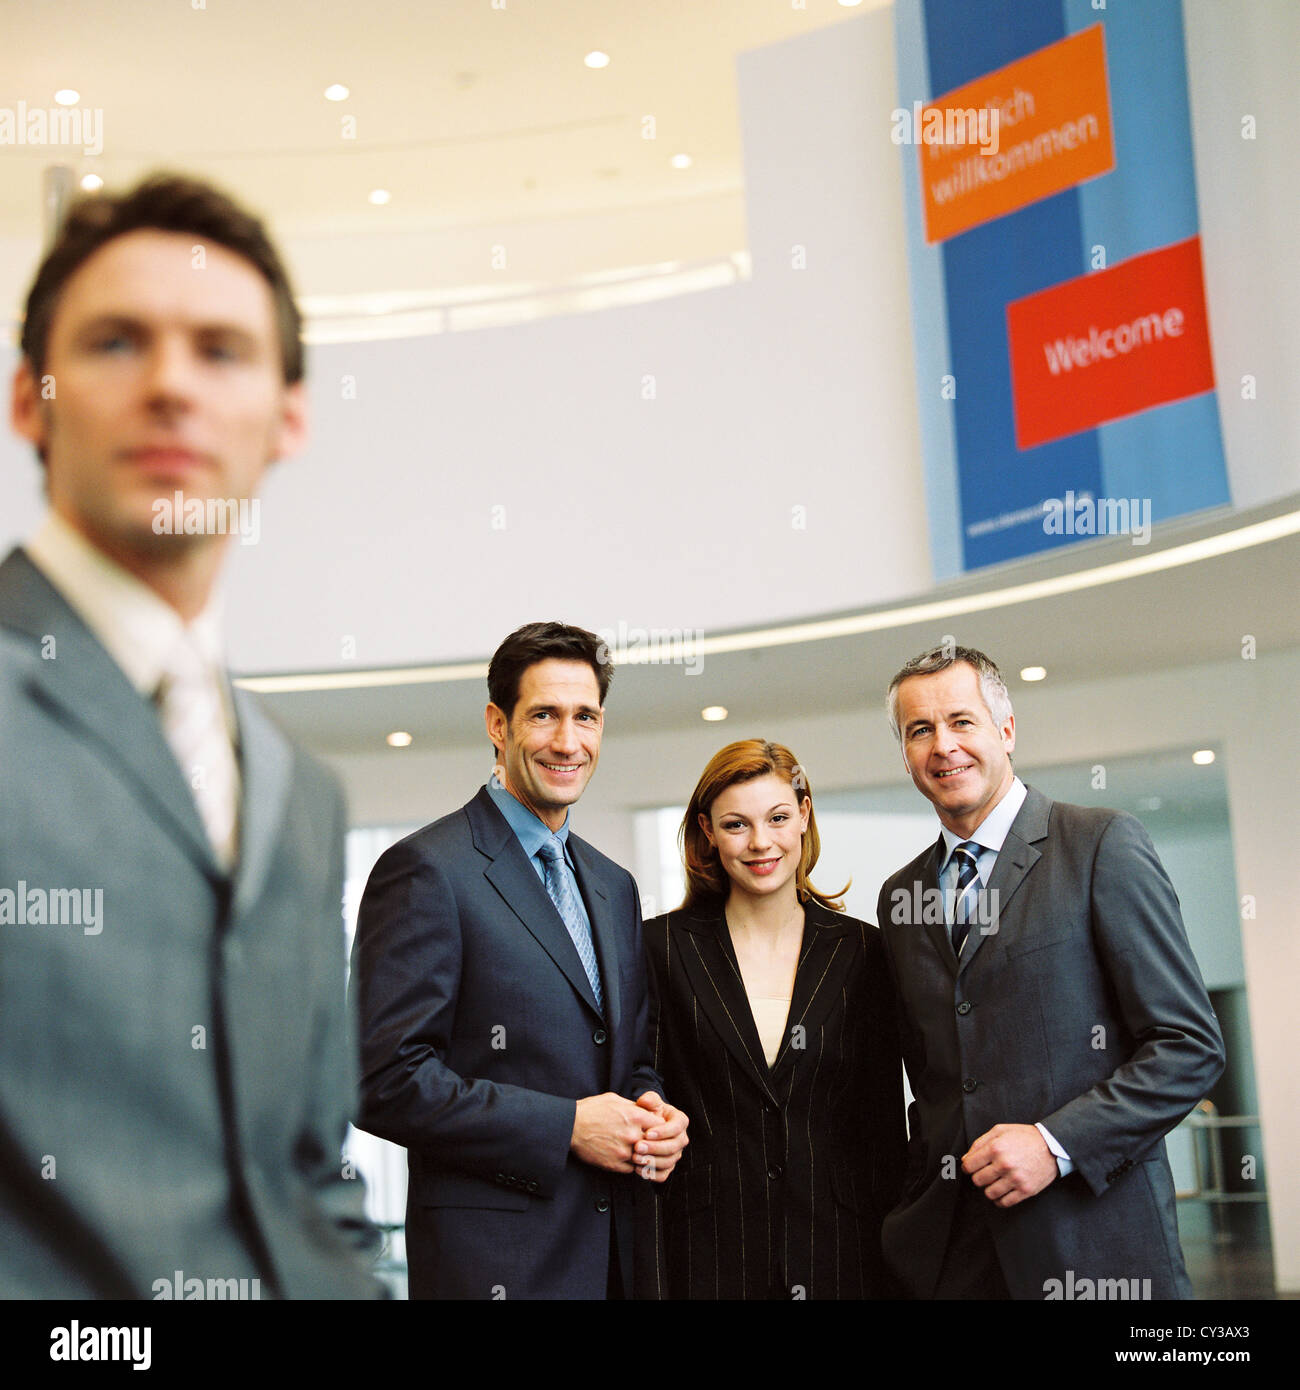 business people manager team License free except ads and outdoor billboards Stock Photo